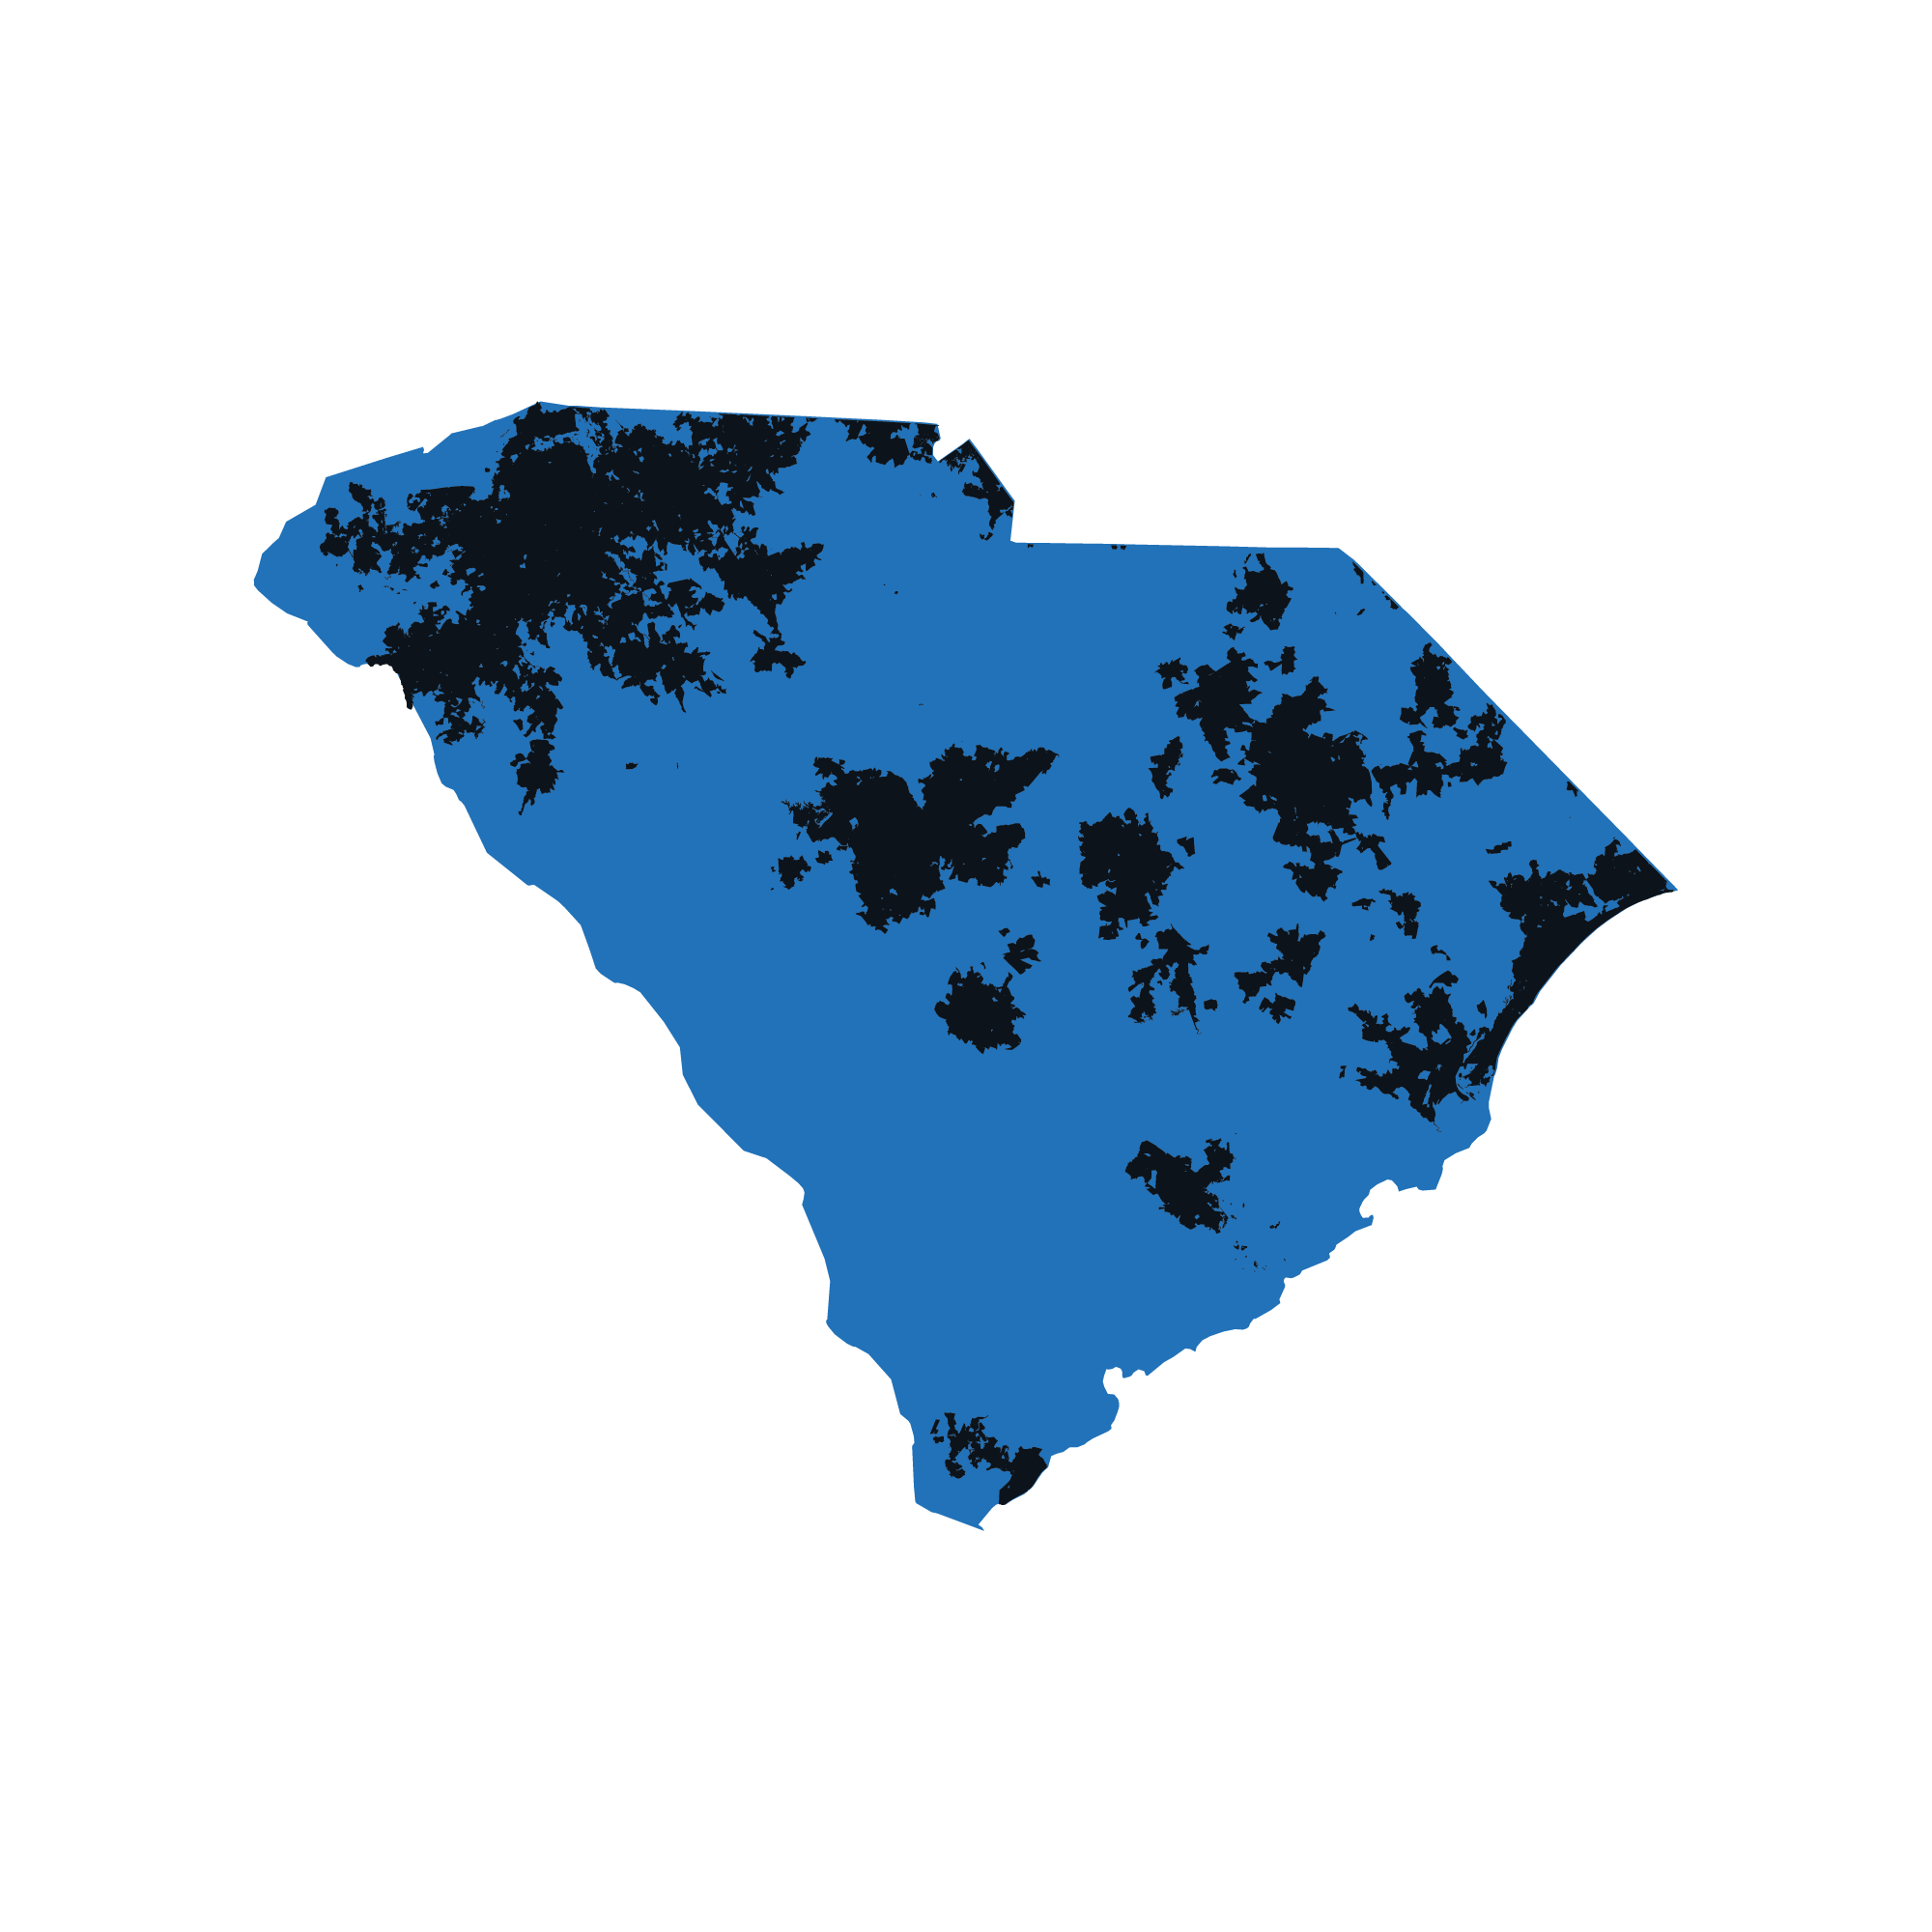 South Carolina map data image